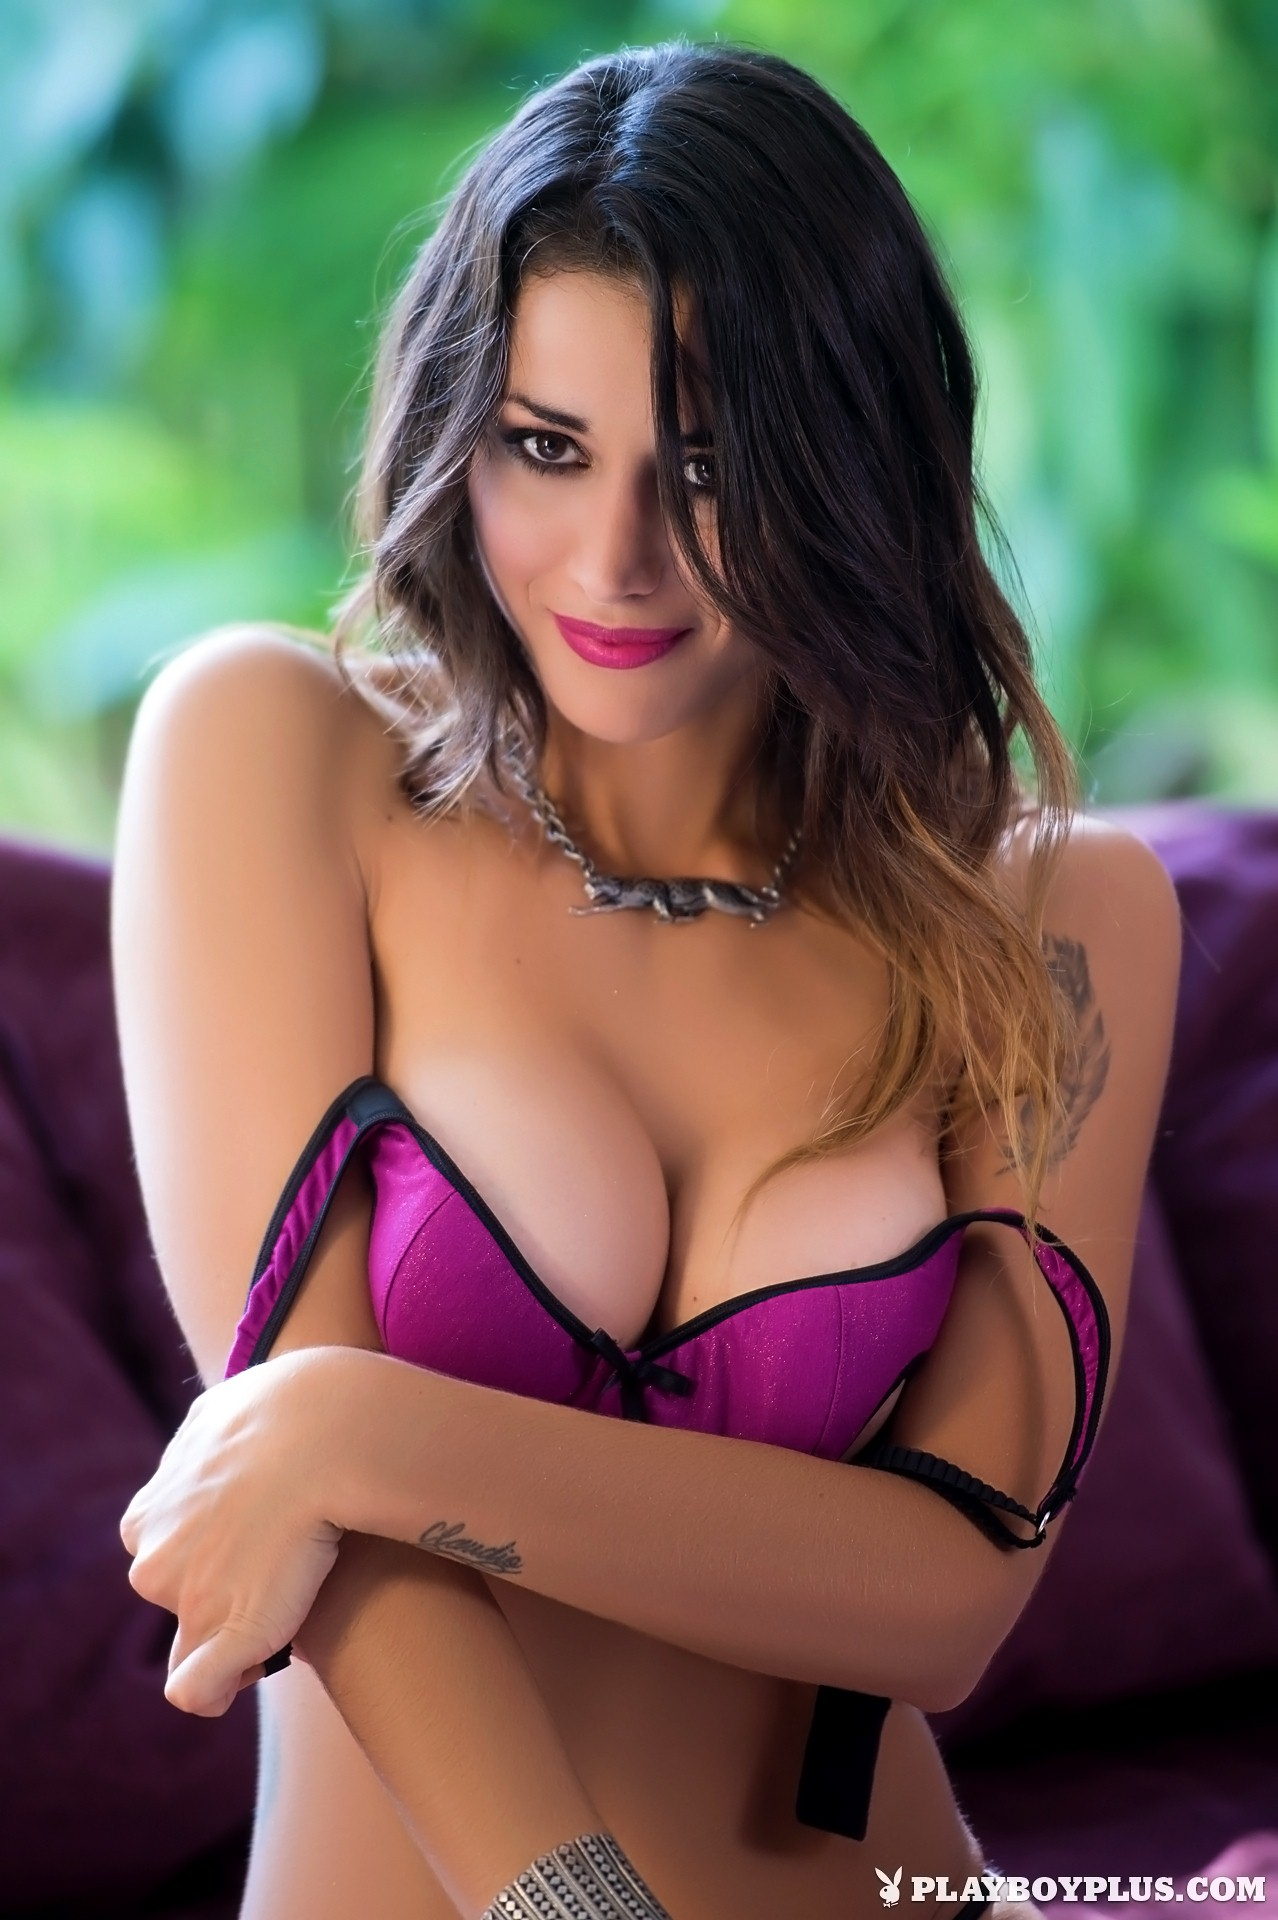 Vanessa Alvar in Full Time Assistant for Playboy | Daily Girls @ Female Update